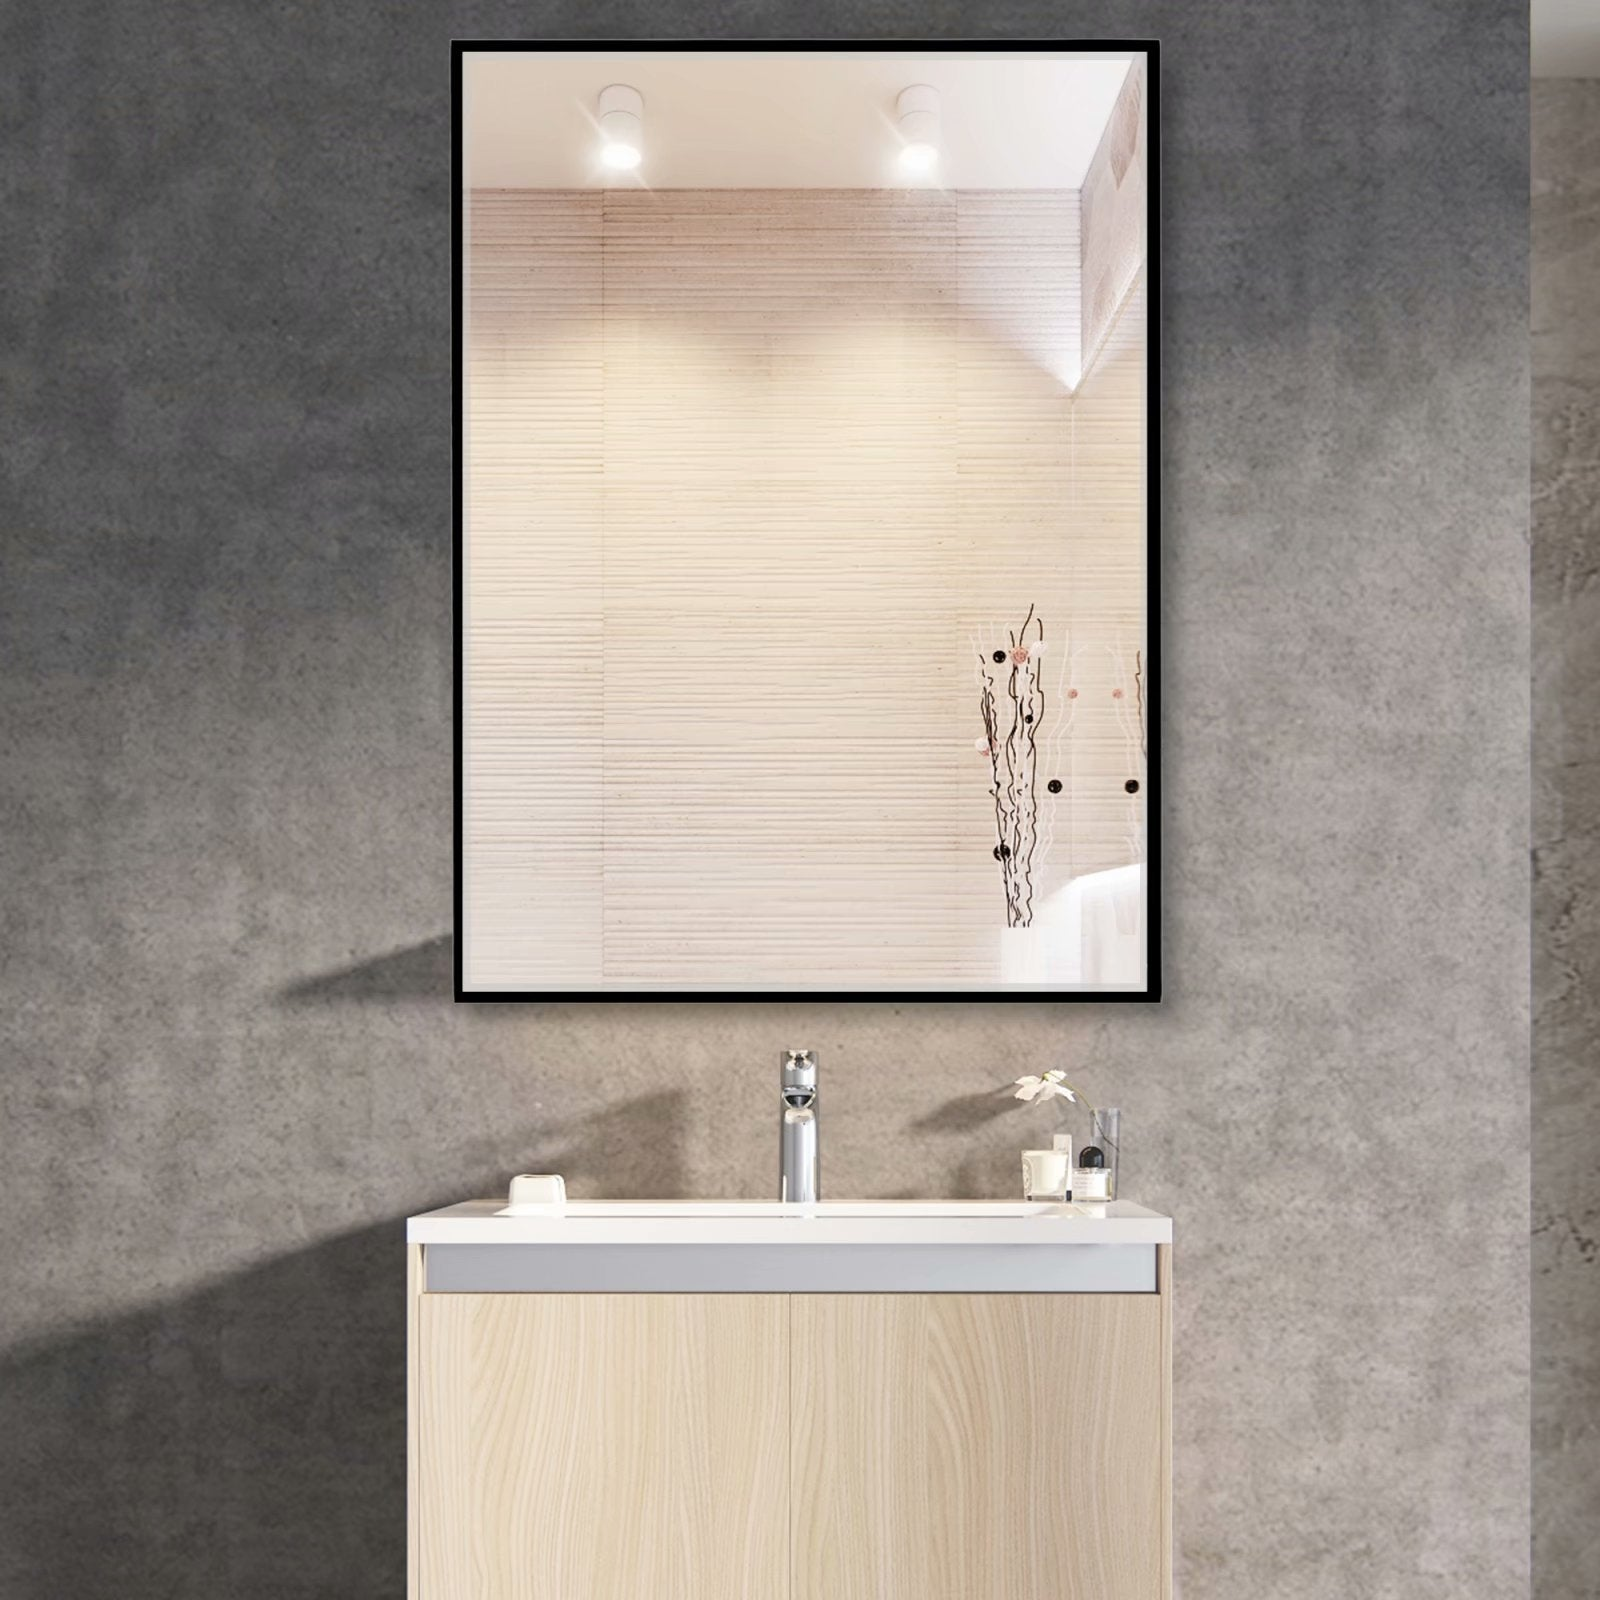 Modern Large Black Rectangle Wall Mirrors For Bathroom Vanity Mirror Overstock 32012951